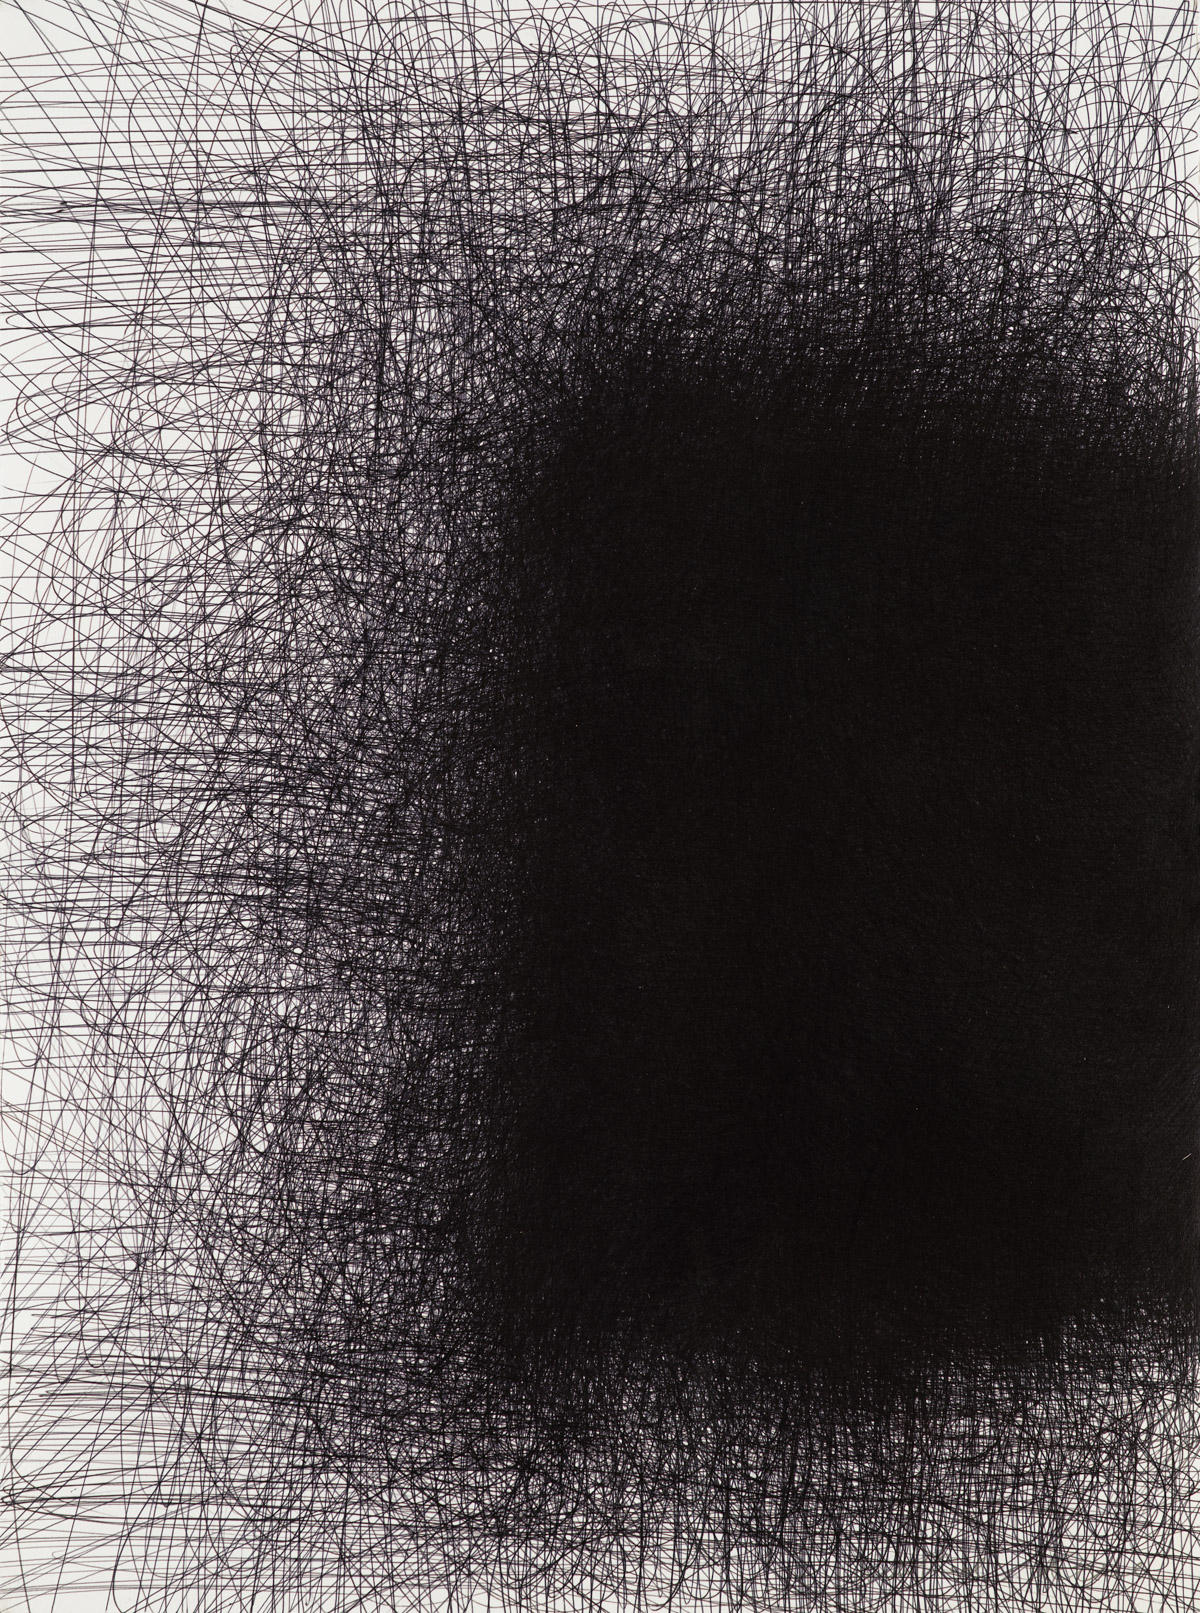 IL LEE, Untitled 98-A